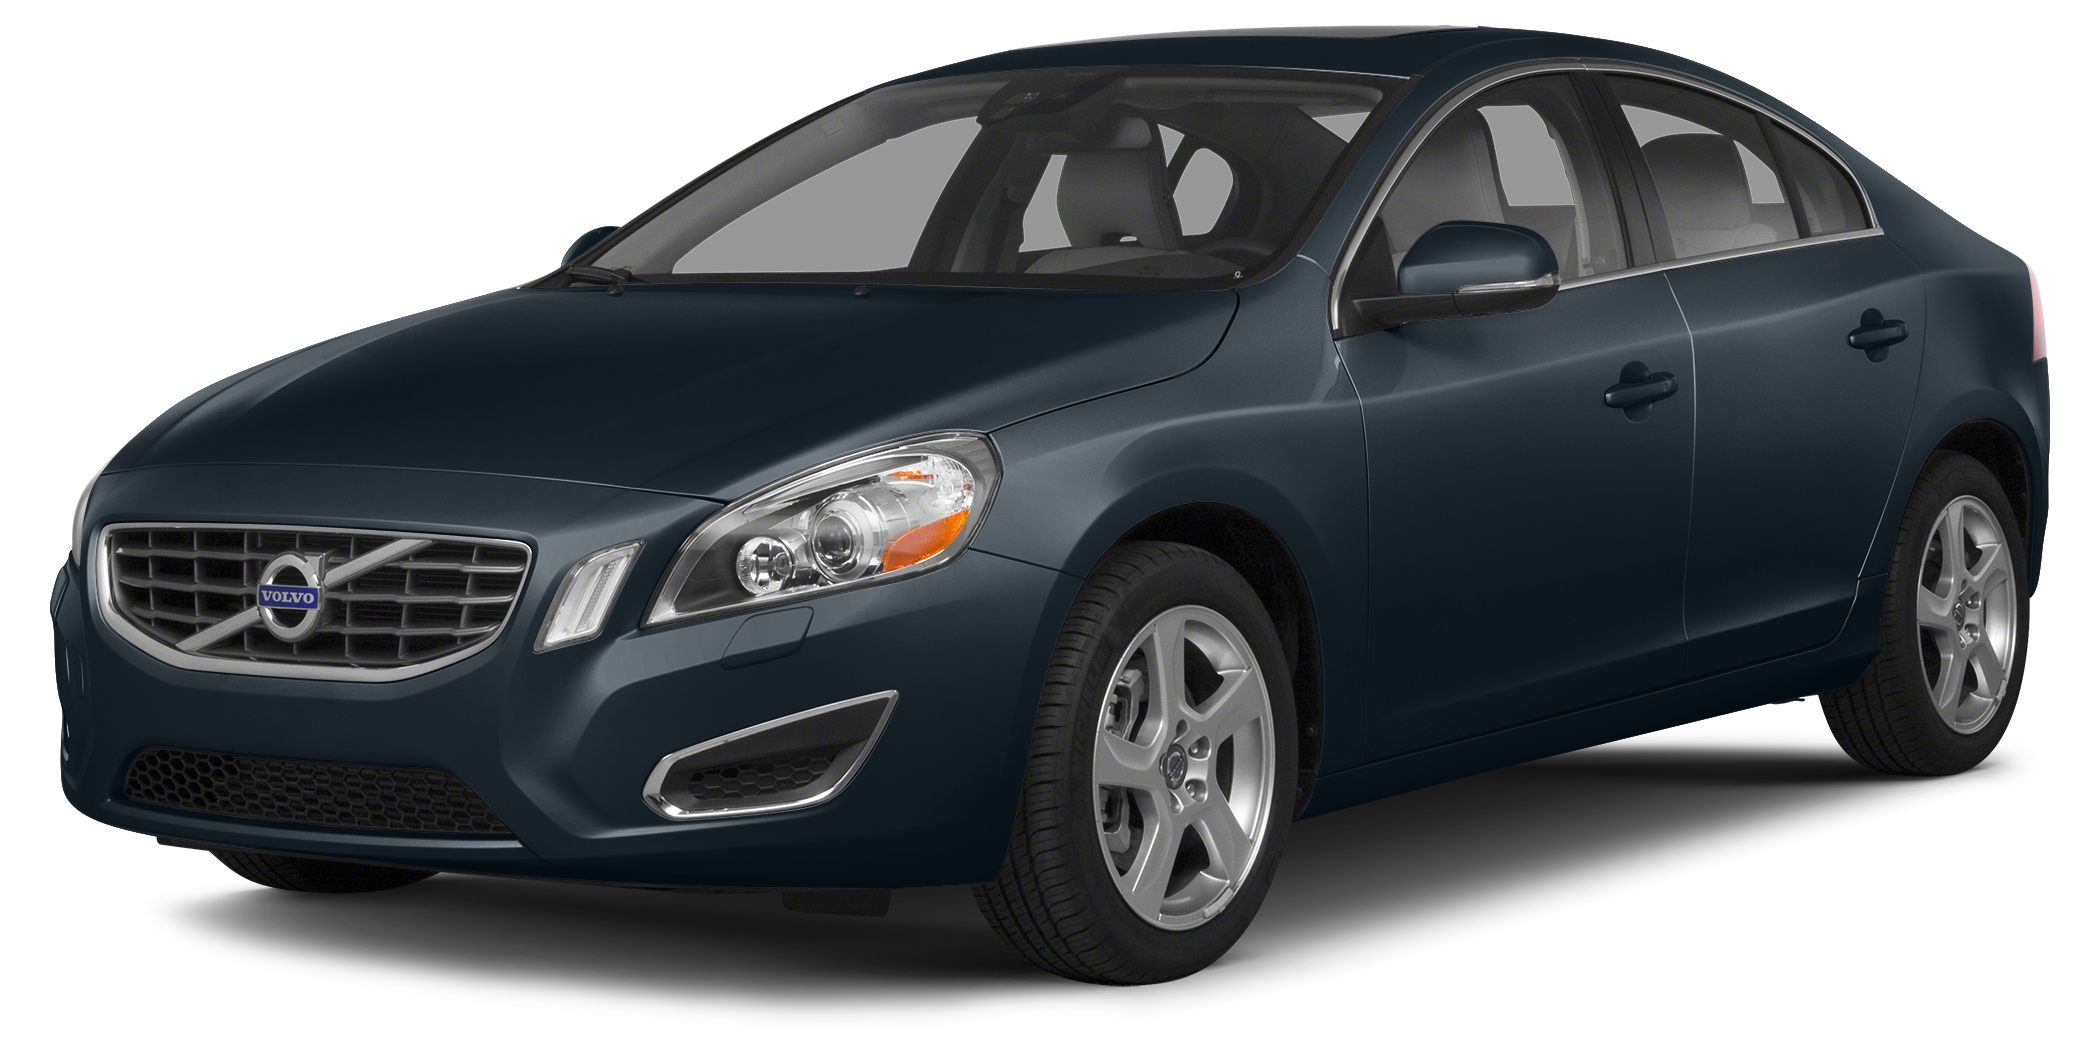 2013 Volvo S60 T5 Volvo vehicles are known for being some of the most dependable cars on the road